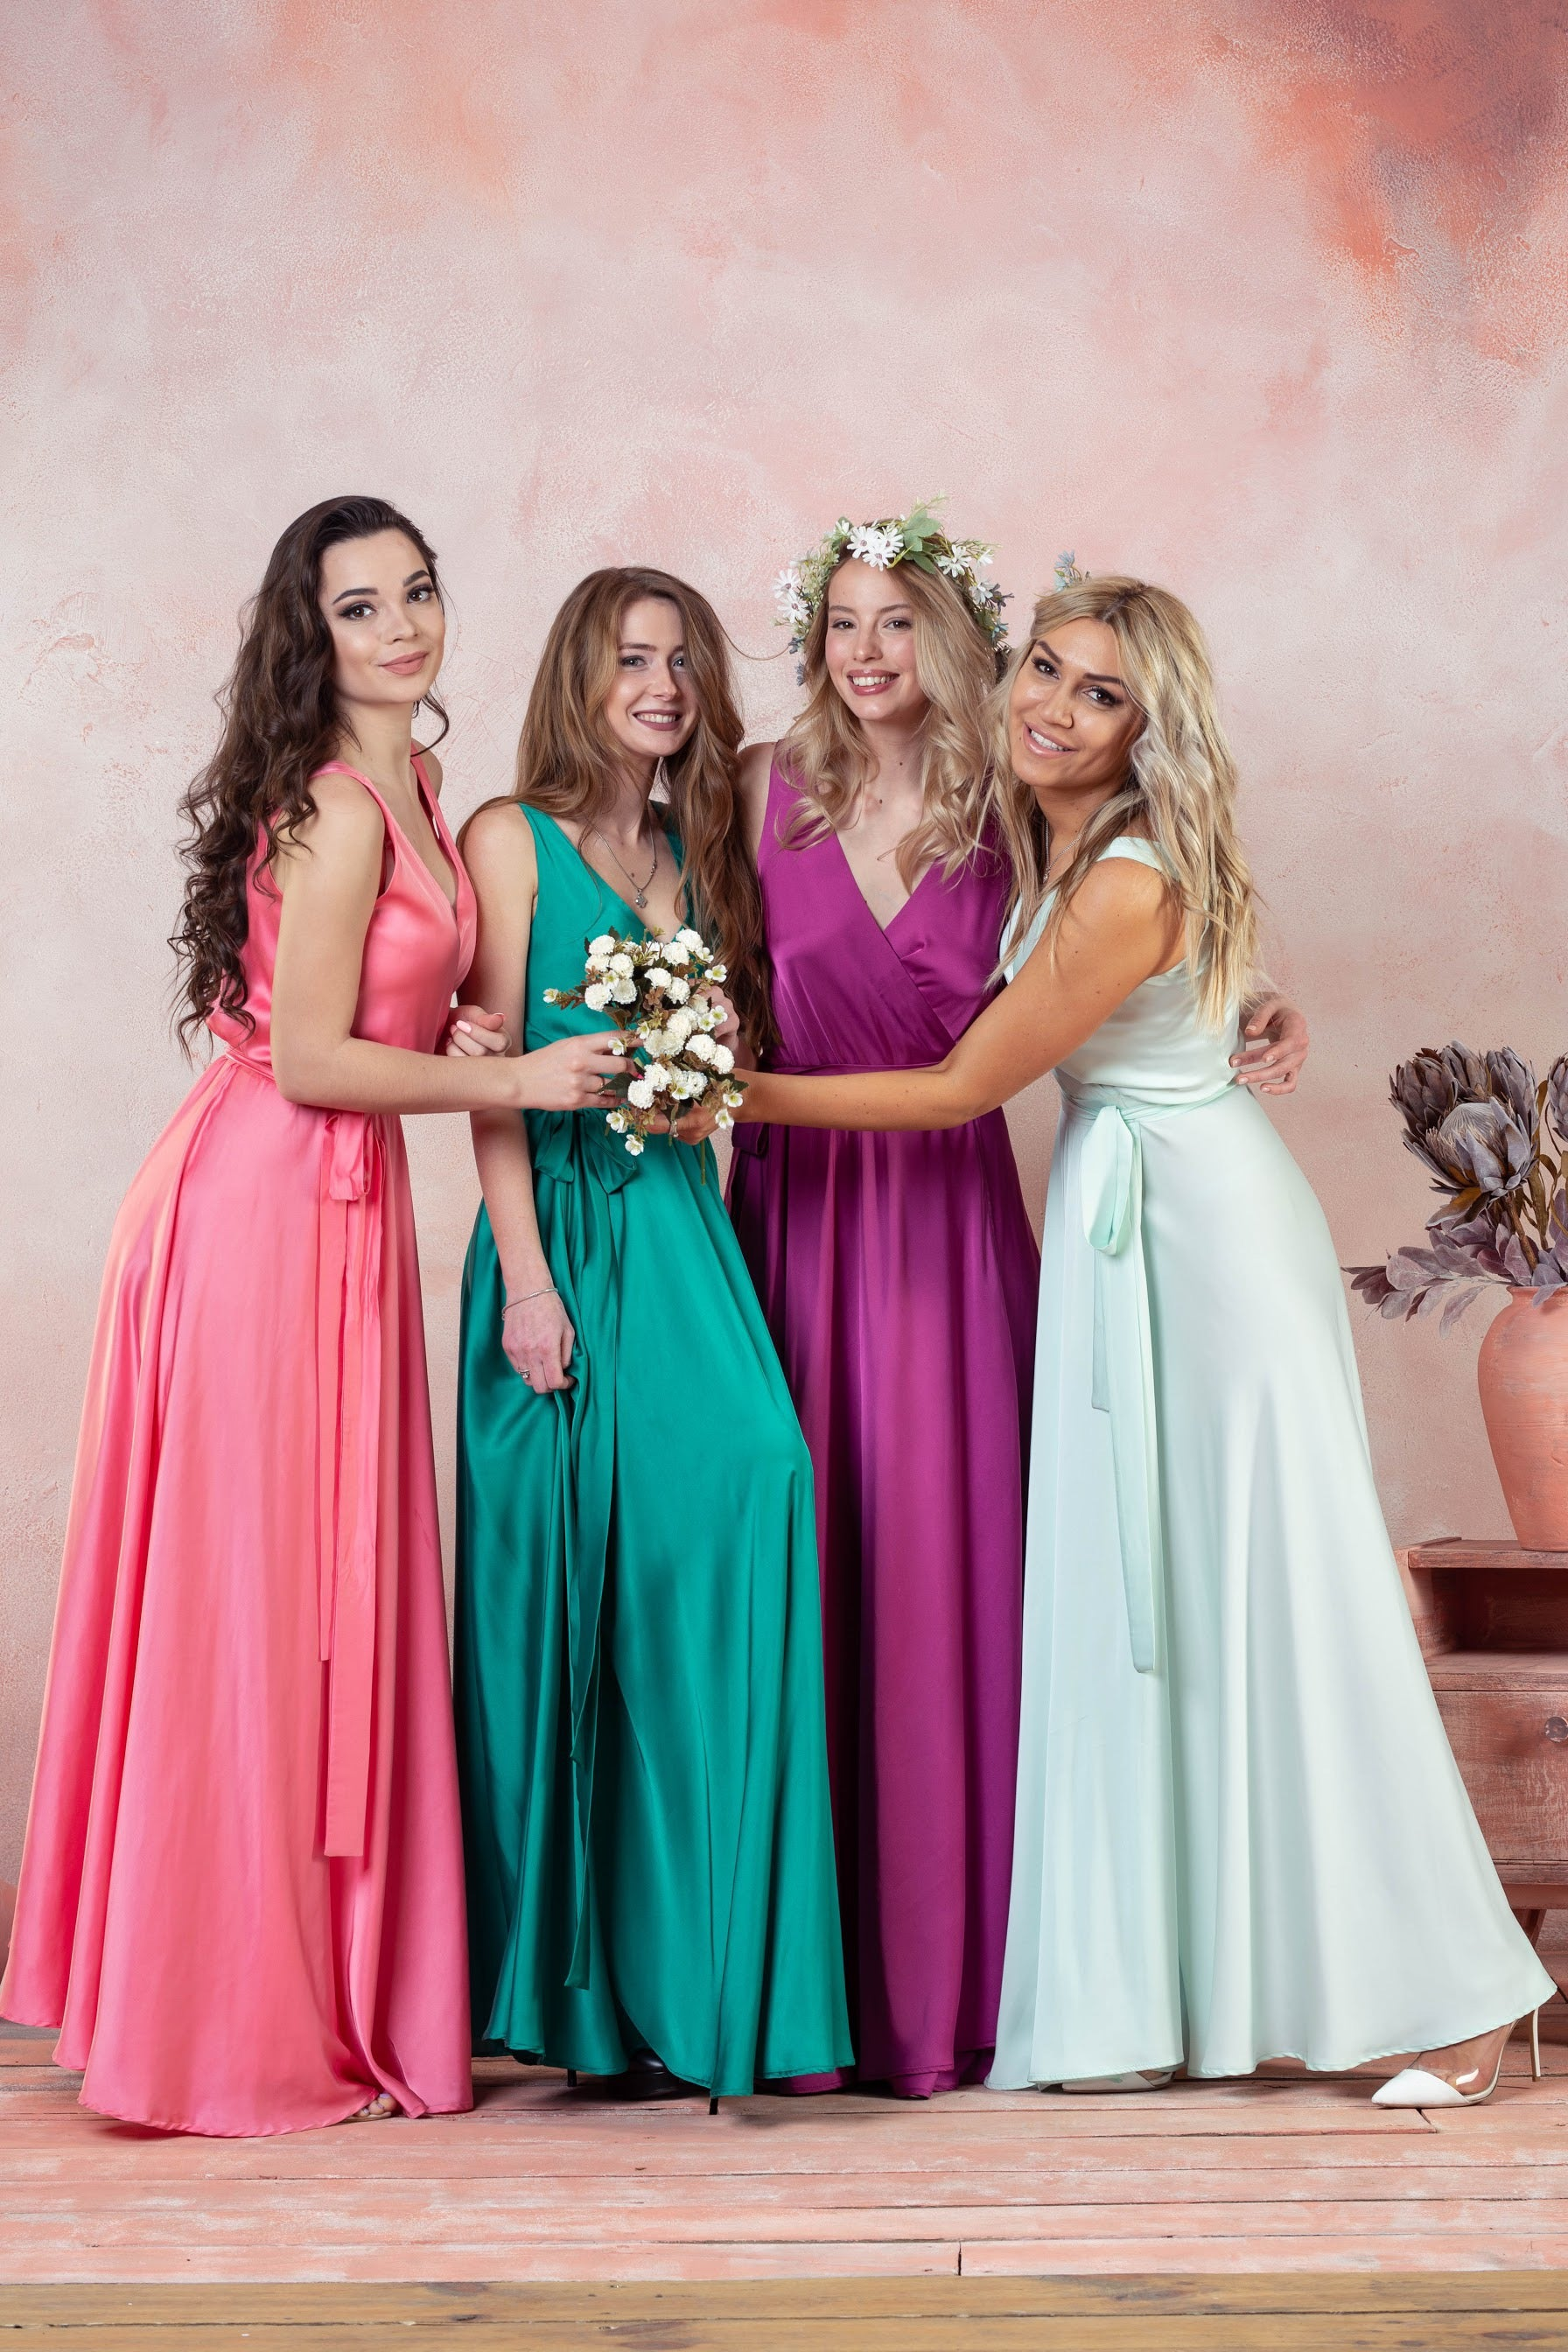 Shopping and choosing the right bridesmaid dress